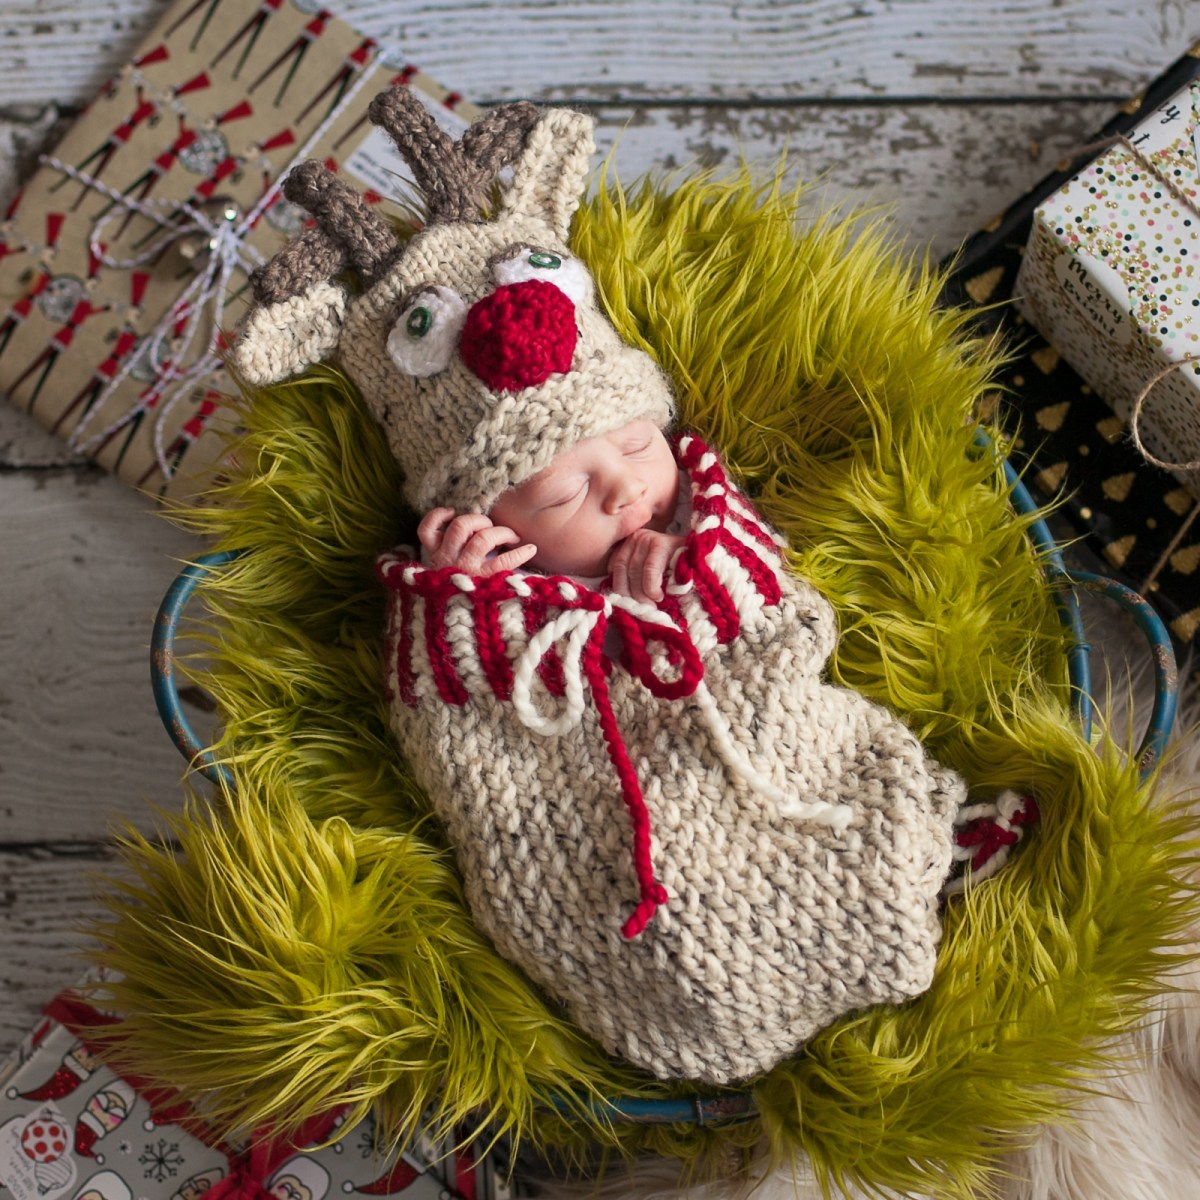 Crochet Cocoon Patterns For Newborns Loom Knit Newborn Cocoon And Reindeer Hat Pattern This Moment Is Good